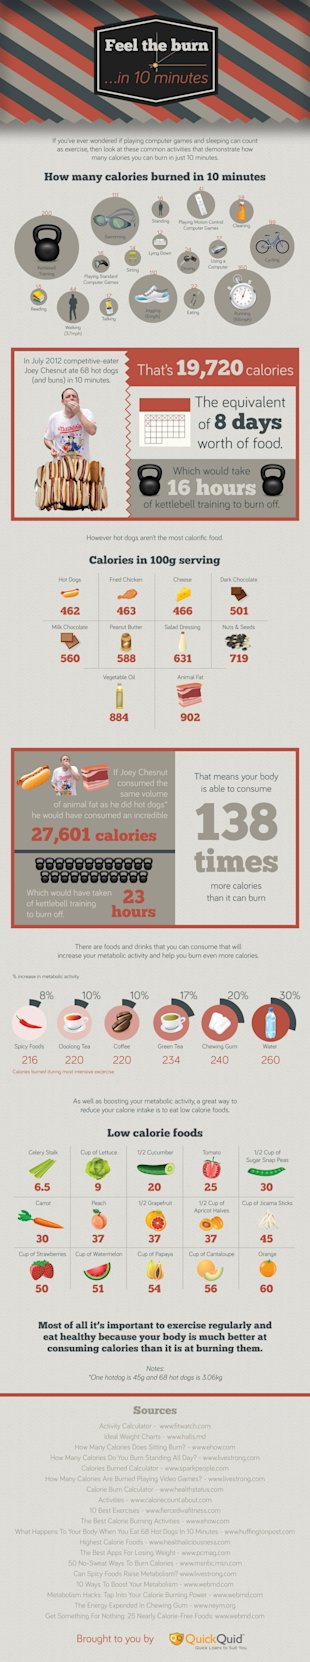 Feel The Burn in 10 Minutes [Infographic] image Feel The Burn in 10 Minutes FINAL